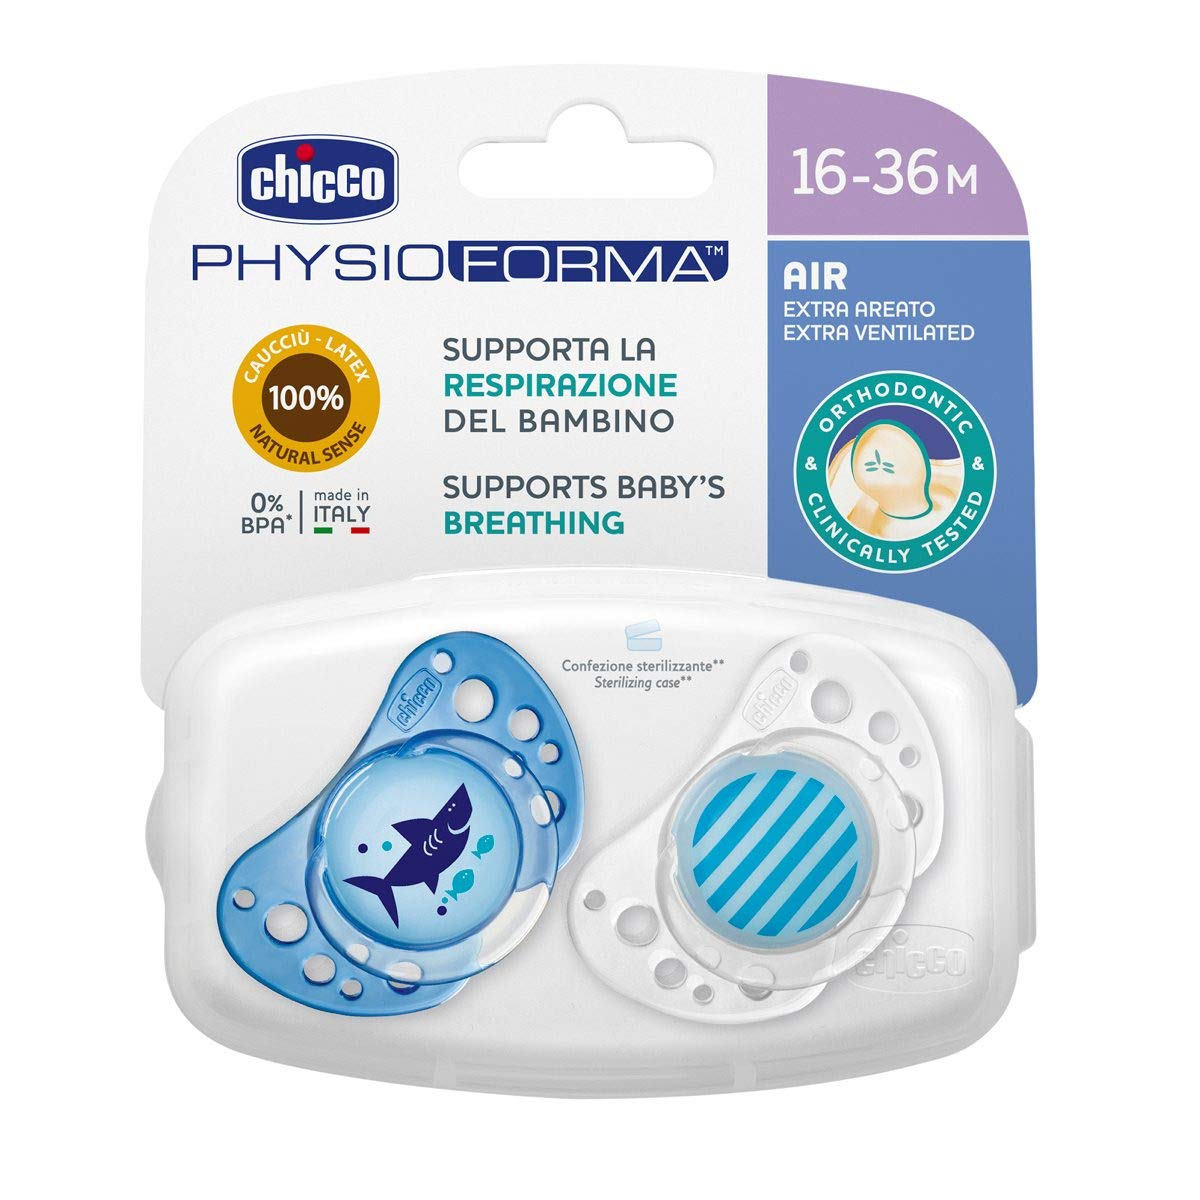 Chicco Physio Air - Pack de 2 chupetes de látex/caucho para 16-36 meses, color azul